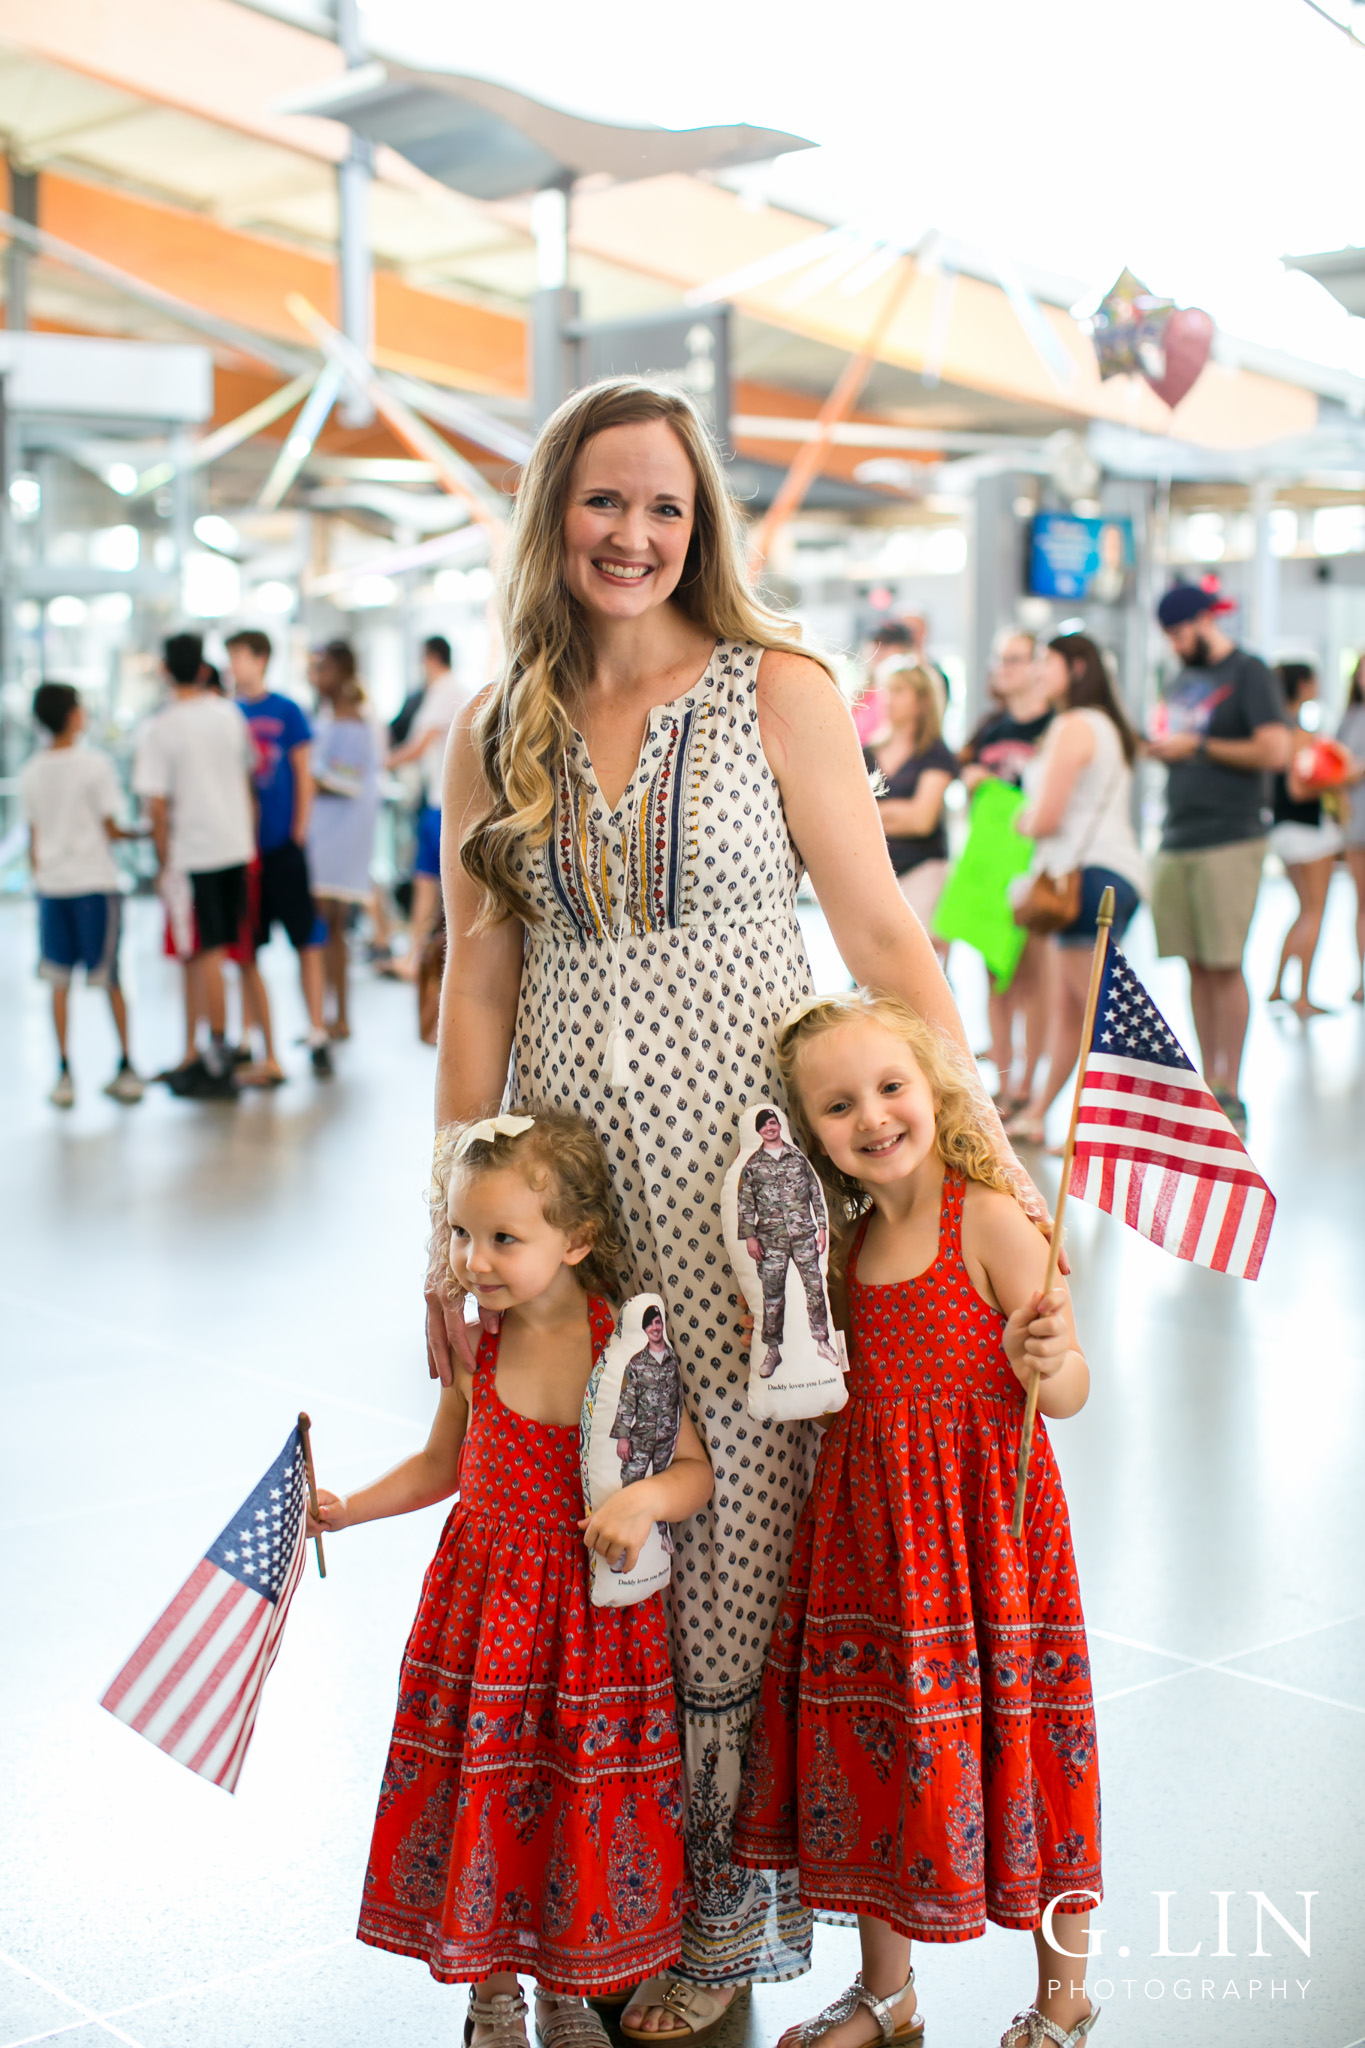 Raleigh Family Photographer | G. Lin Photography | Little girls with their mom smiling and standing in the airport